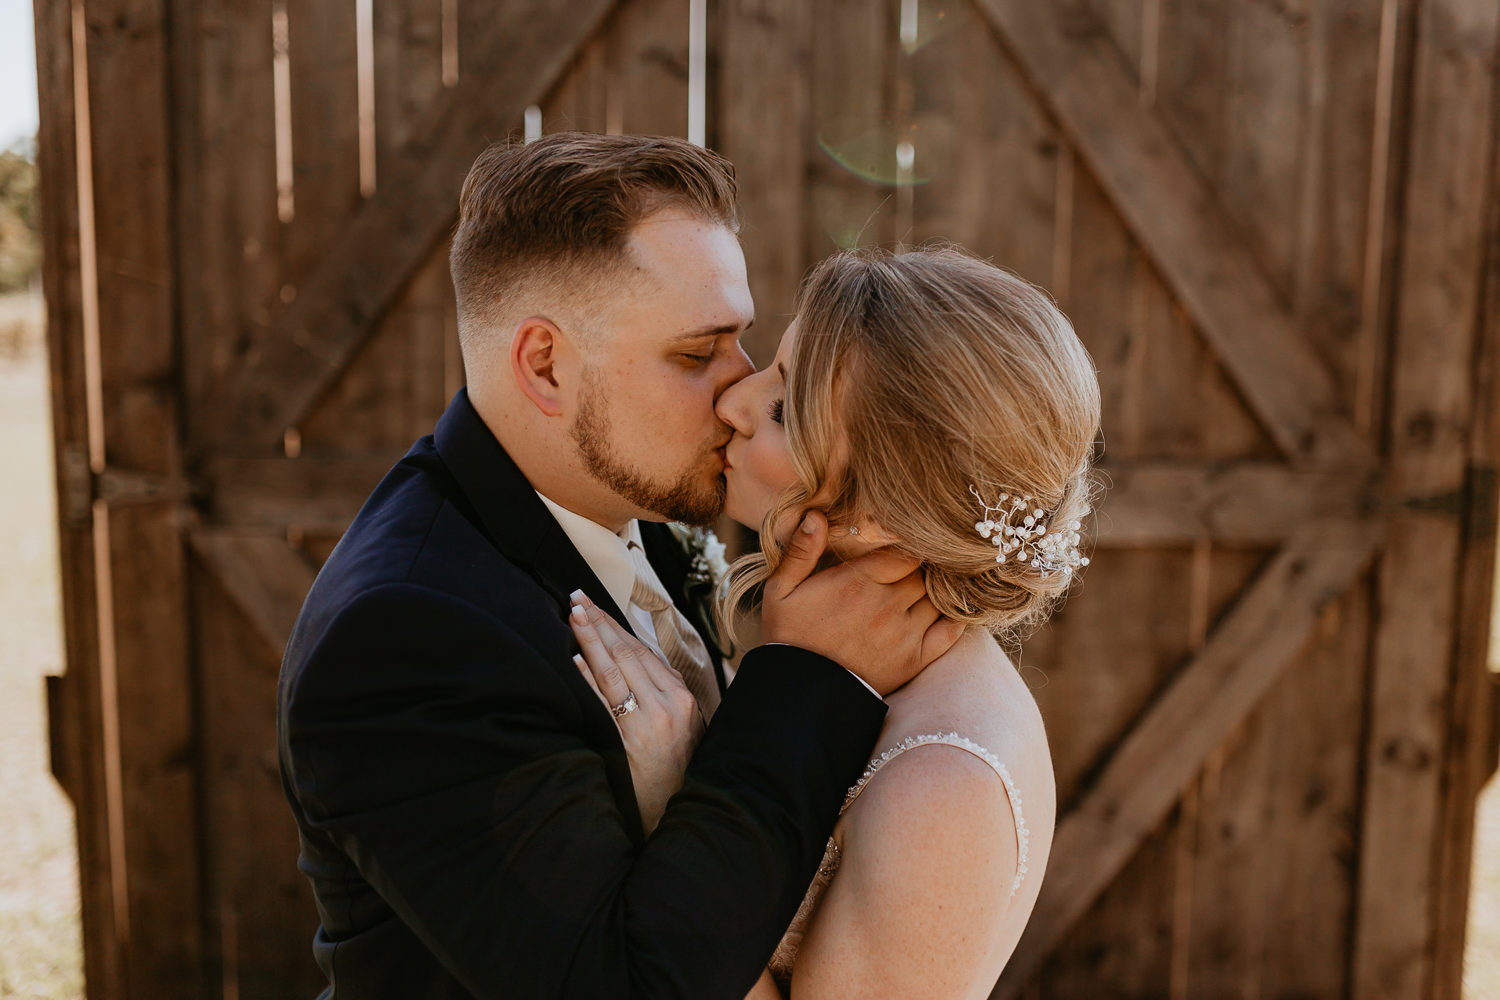 groom kissing bride in front of wooden barn doors, his hands on her face